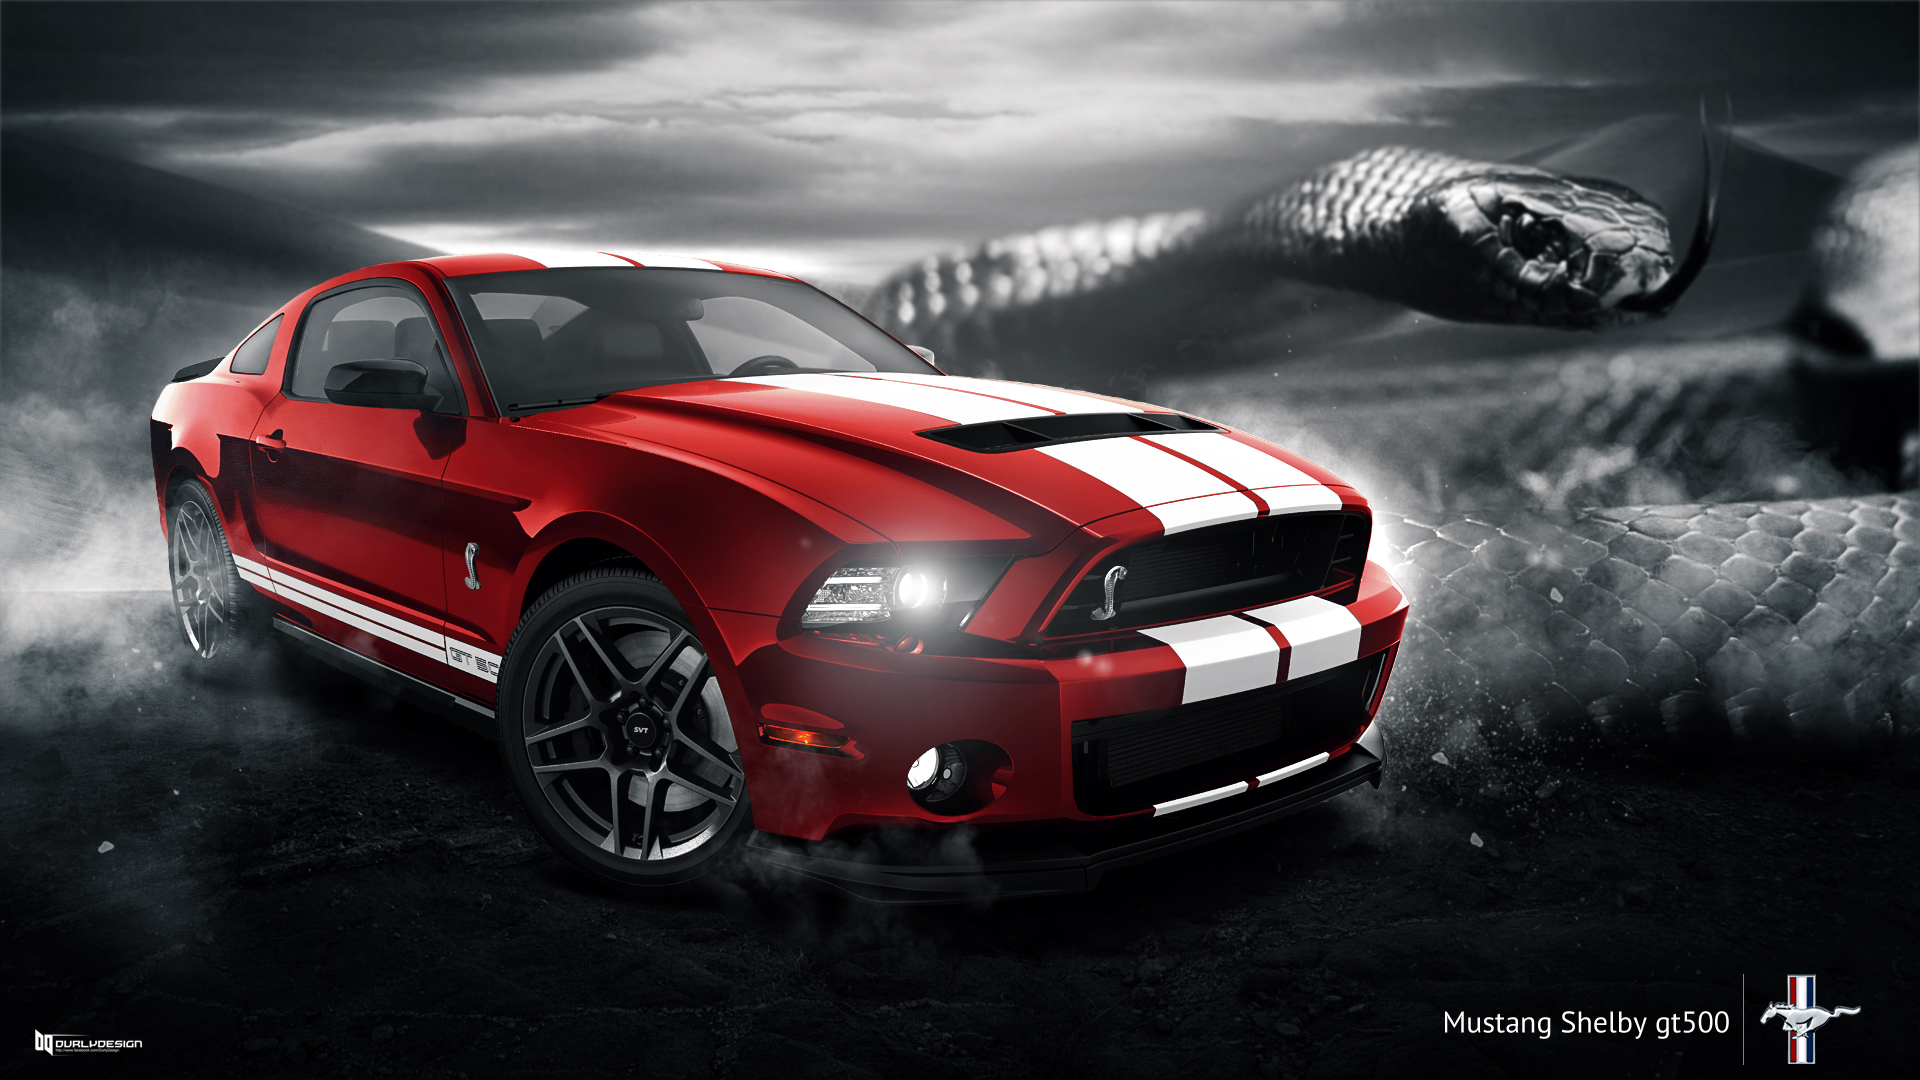 Ford mustang shelby gt500 wallpaper by durly0505 on deviantart